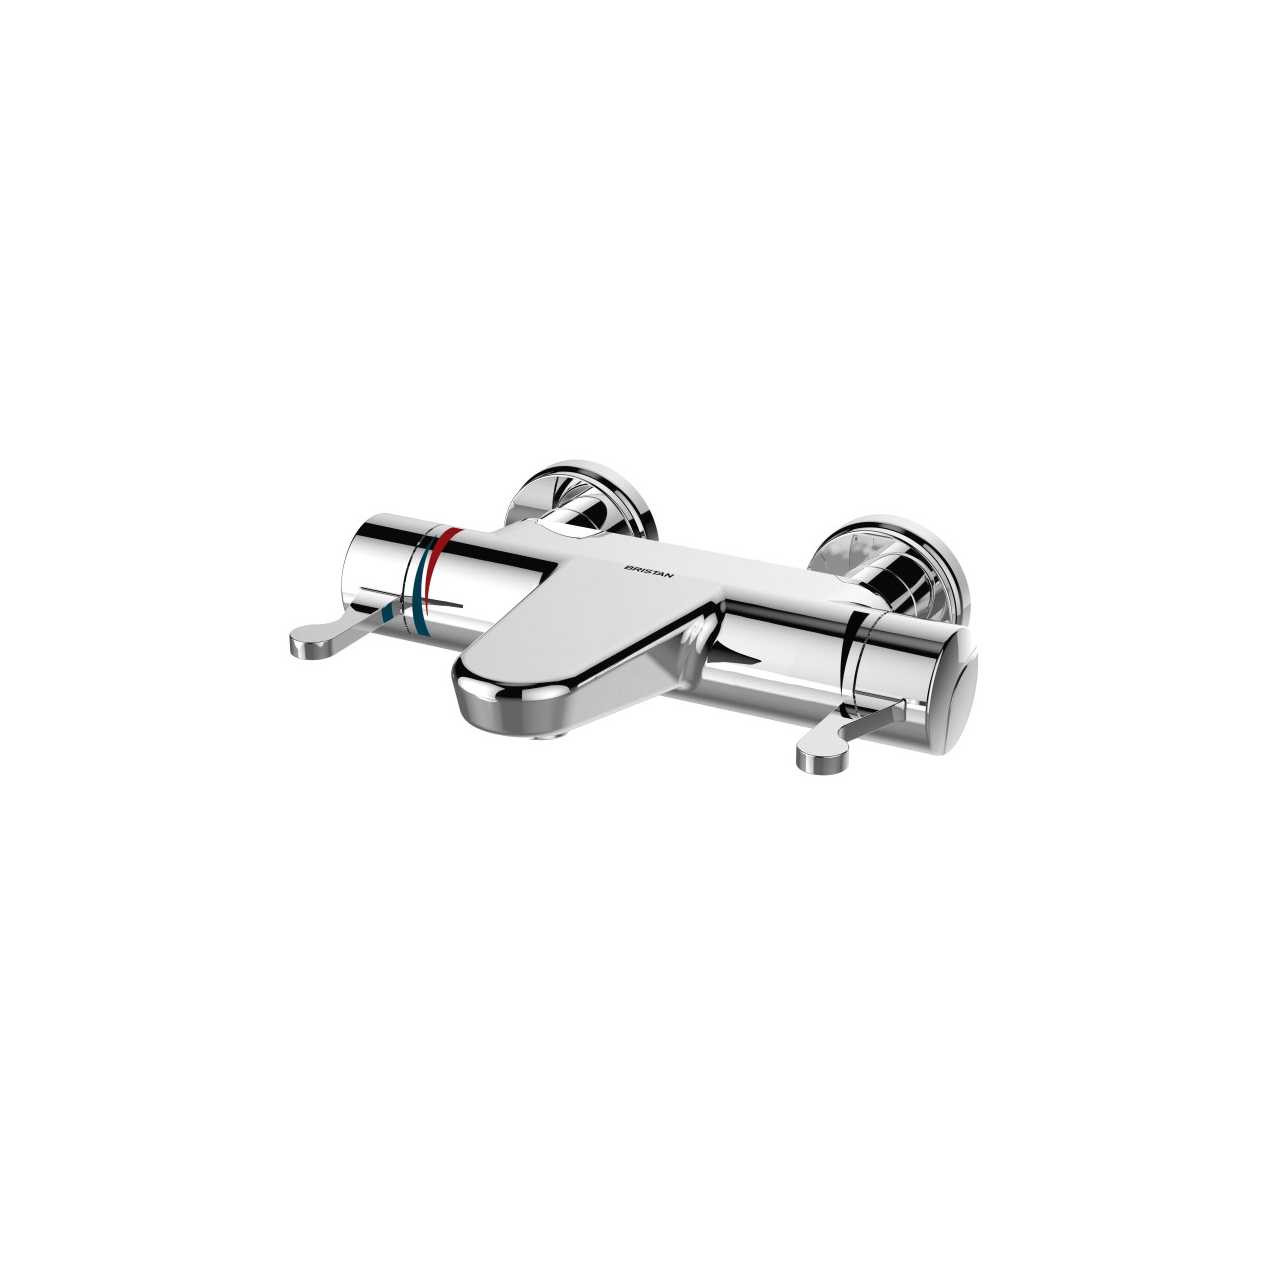 Bristan Opac Chrome Thermostatic Wall Mounted Dual Control Bath Filler Tap with Chrome Levers - OP-THBF-WML-C